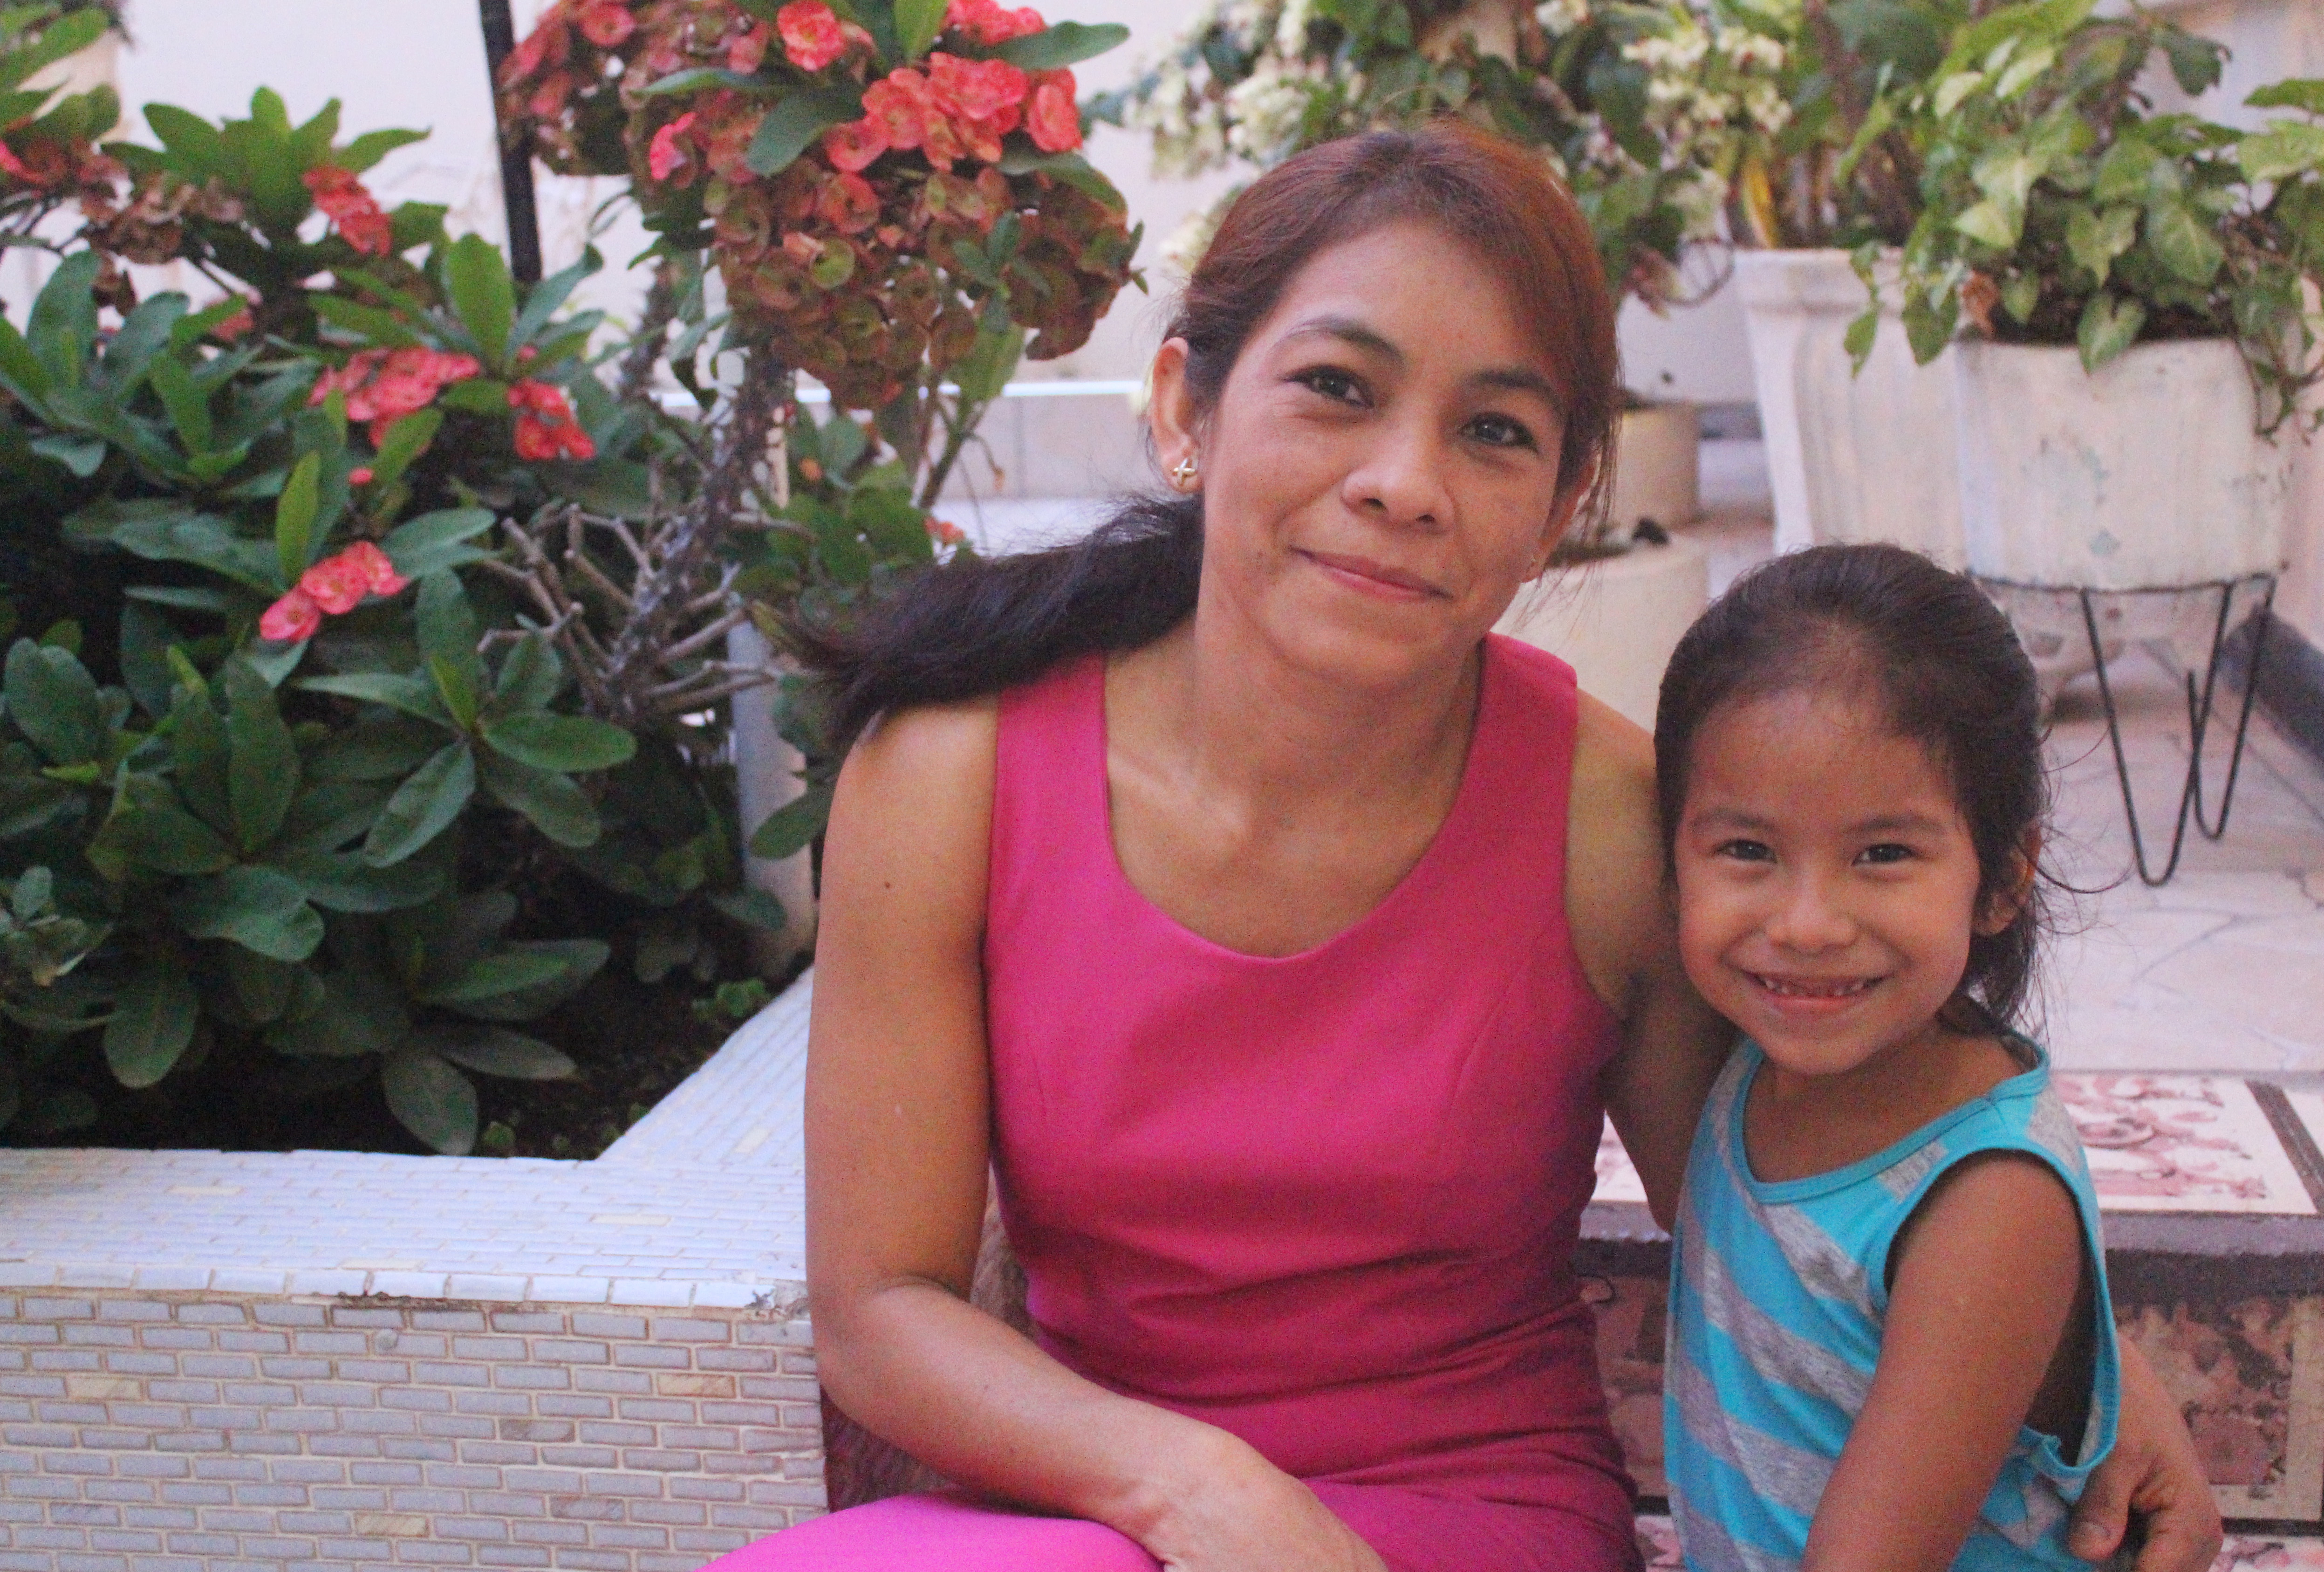 María Sánchez, here with her five-year-old daughter, Jessica, left her small farming town to find work in the capital. Three of her brothers went to the U.S. illegally. (María José Burgos/CBC)